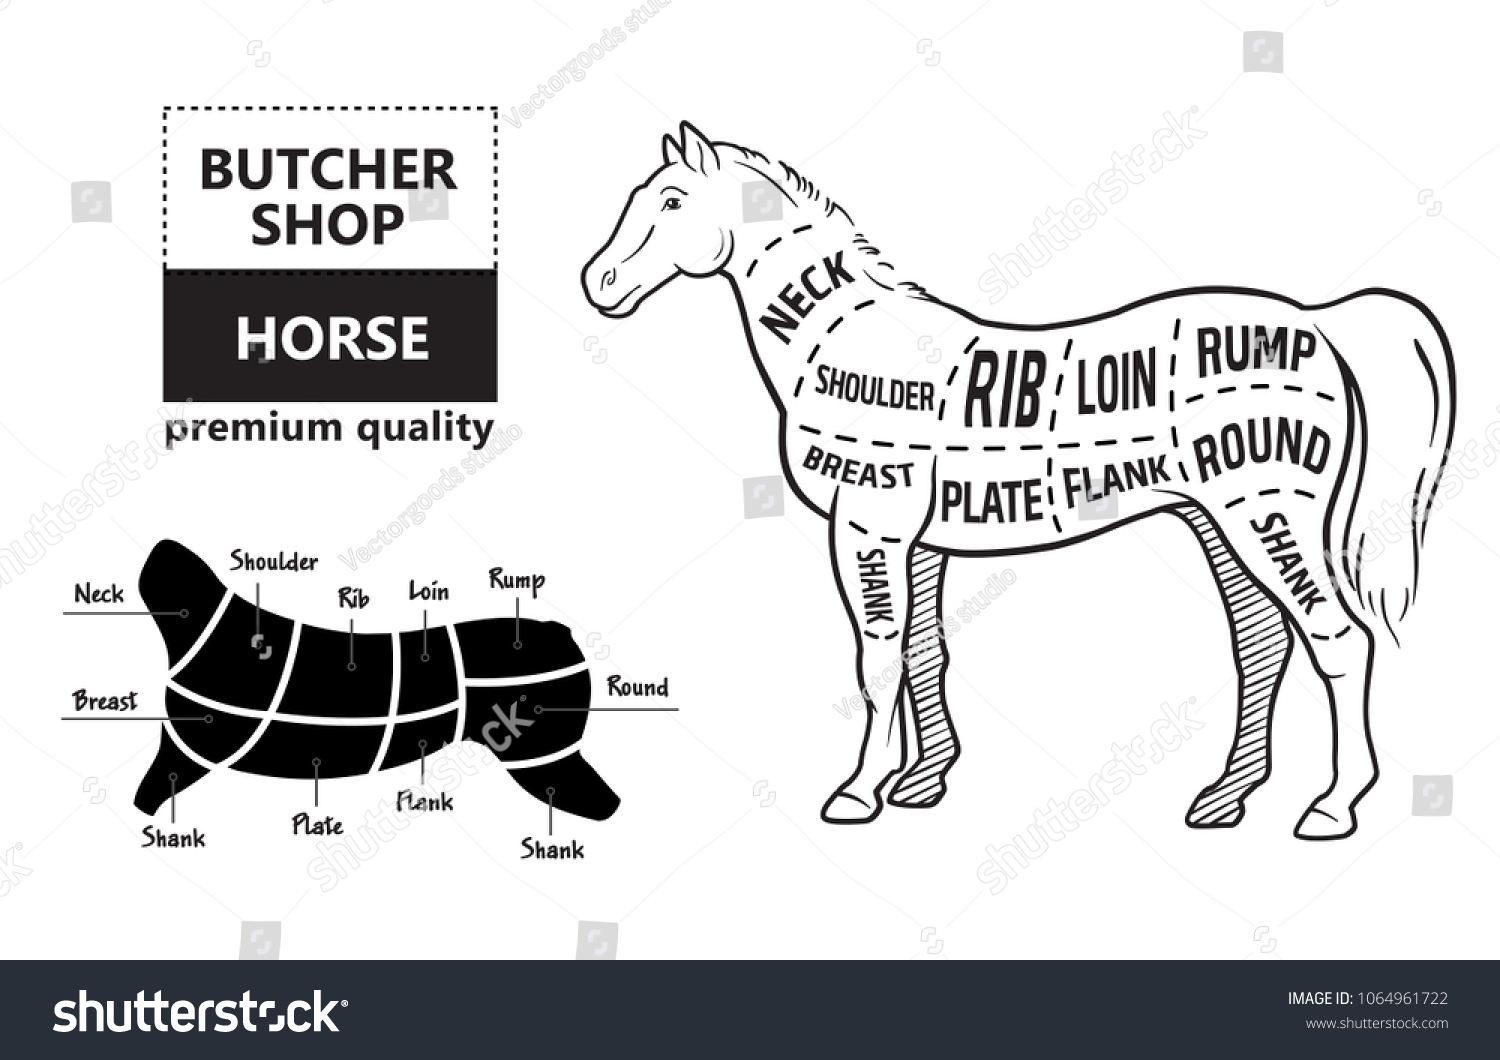 hight resolution of scheme of cutting horse meat with cutting lines design for butcher shop banner